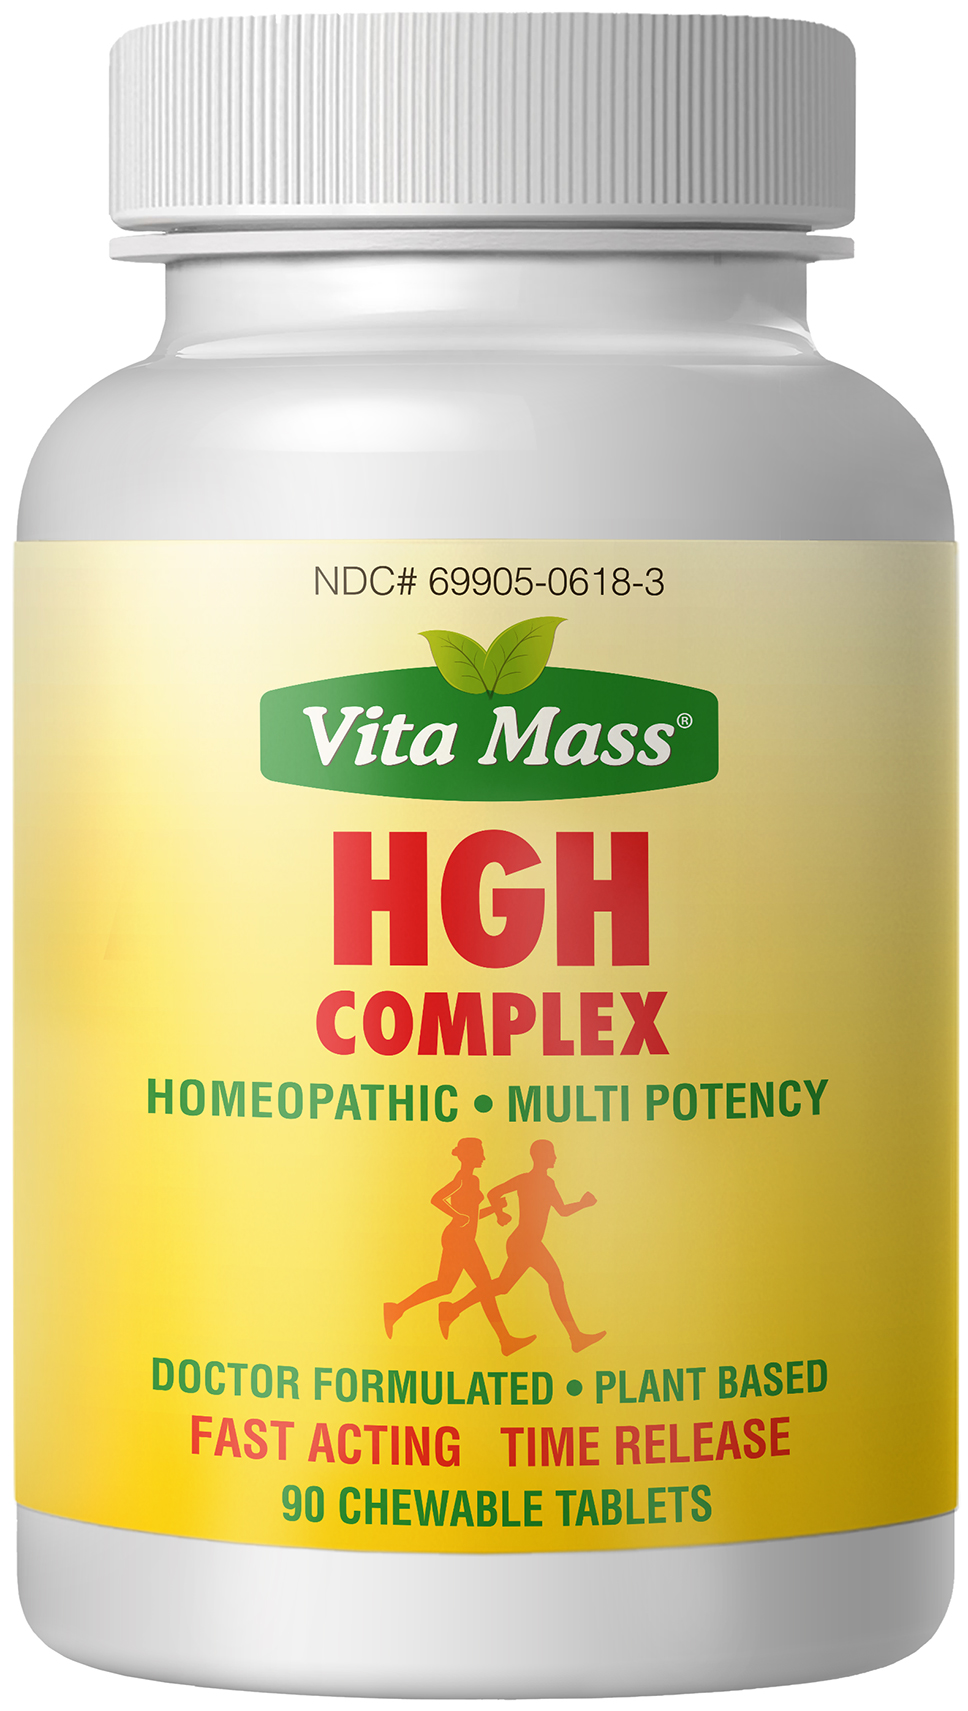 ClenXDV HGH Muscle Growth Hormone To Build Muscle   HGH.com